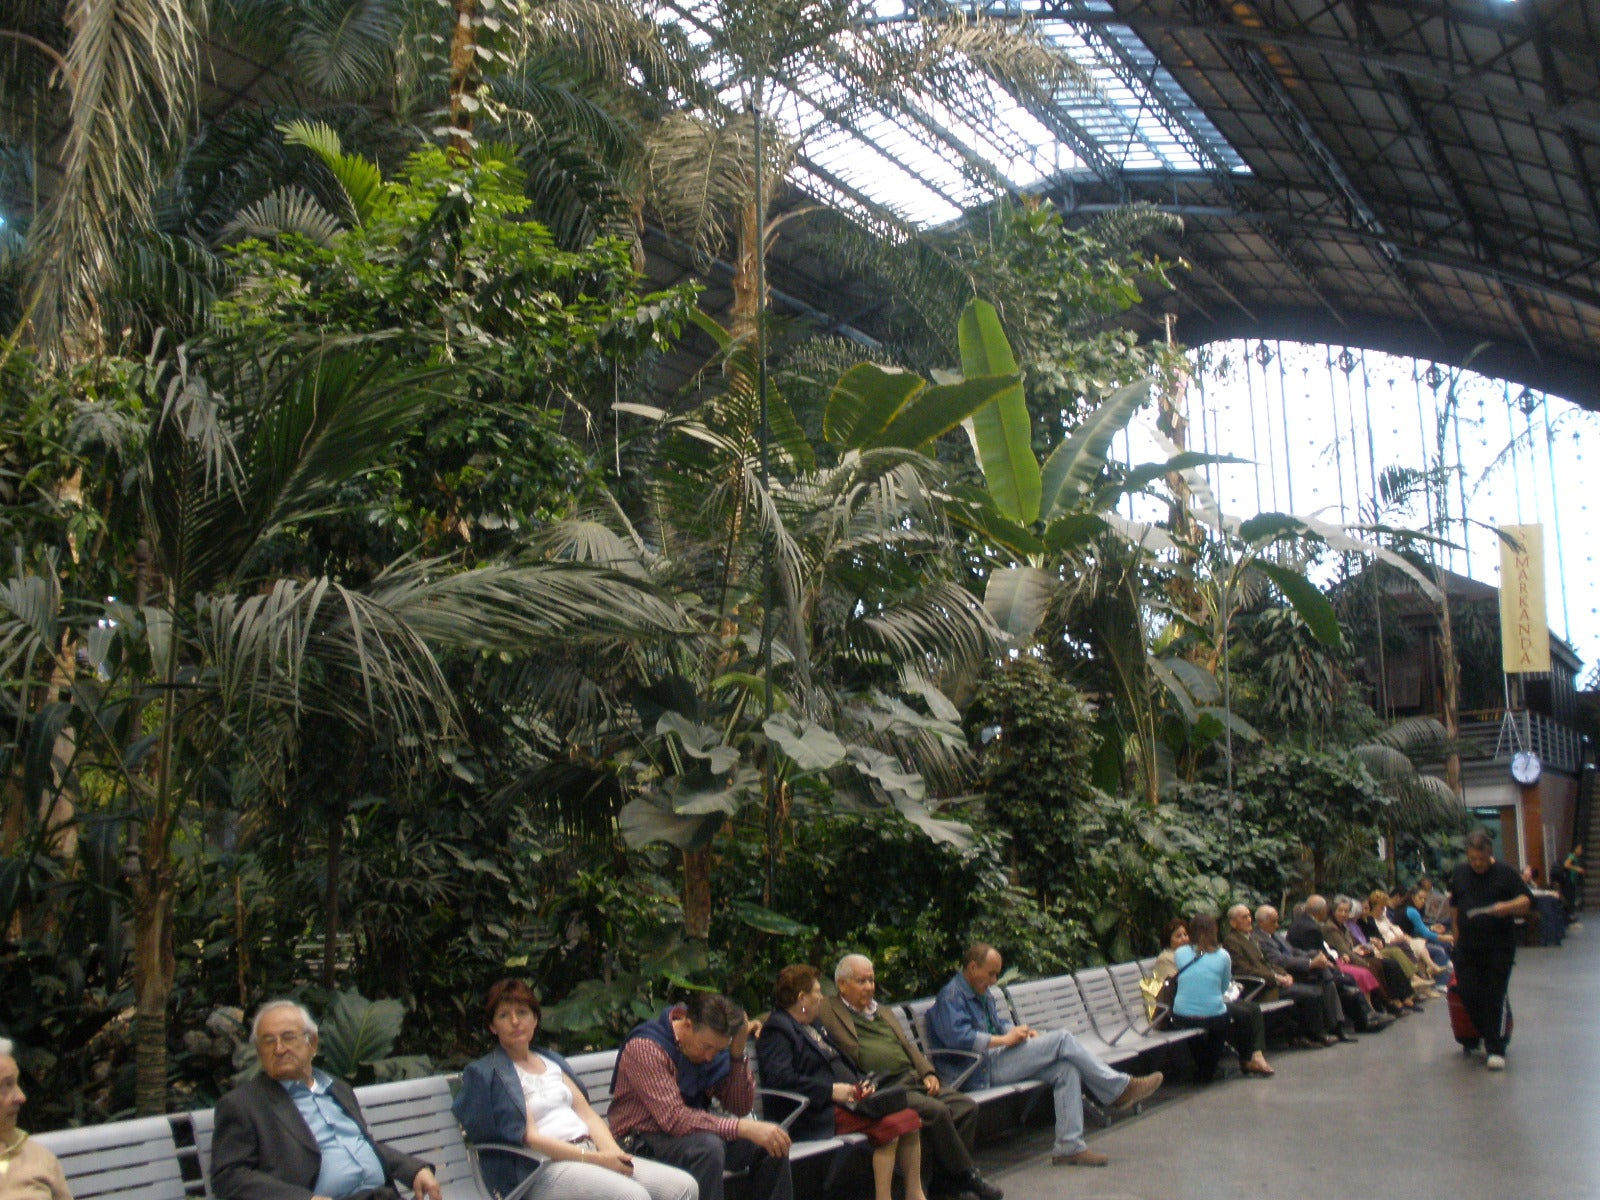 Resort en Estación de Atocha